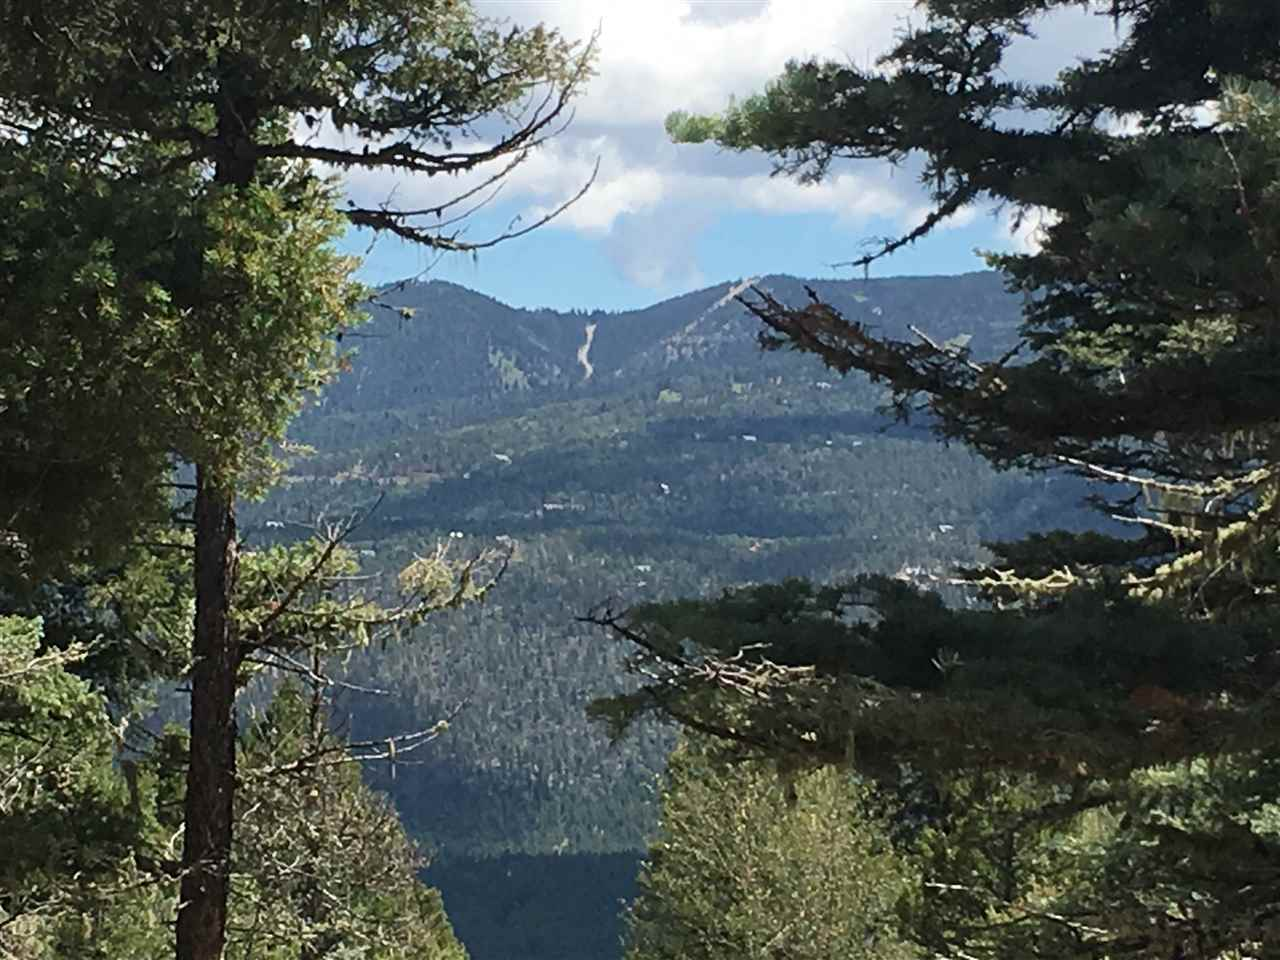 Views Views Views!  Beautiful 5.5 acre property with cleared buildable area.  Lot accessible top and bottom from the road.  Close to National Forest access.  Mature Aspen and Coniferous trees.  Neighborhood of 2+ acre lots, maximizing privacy and outdoor space.